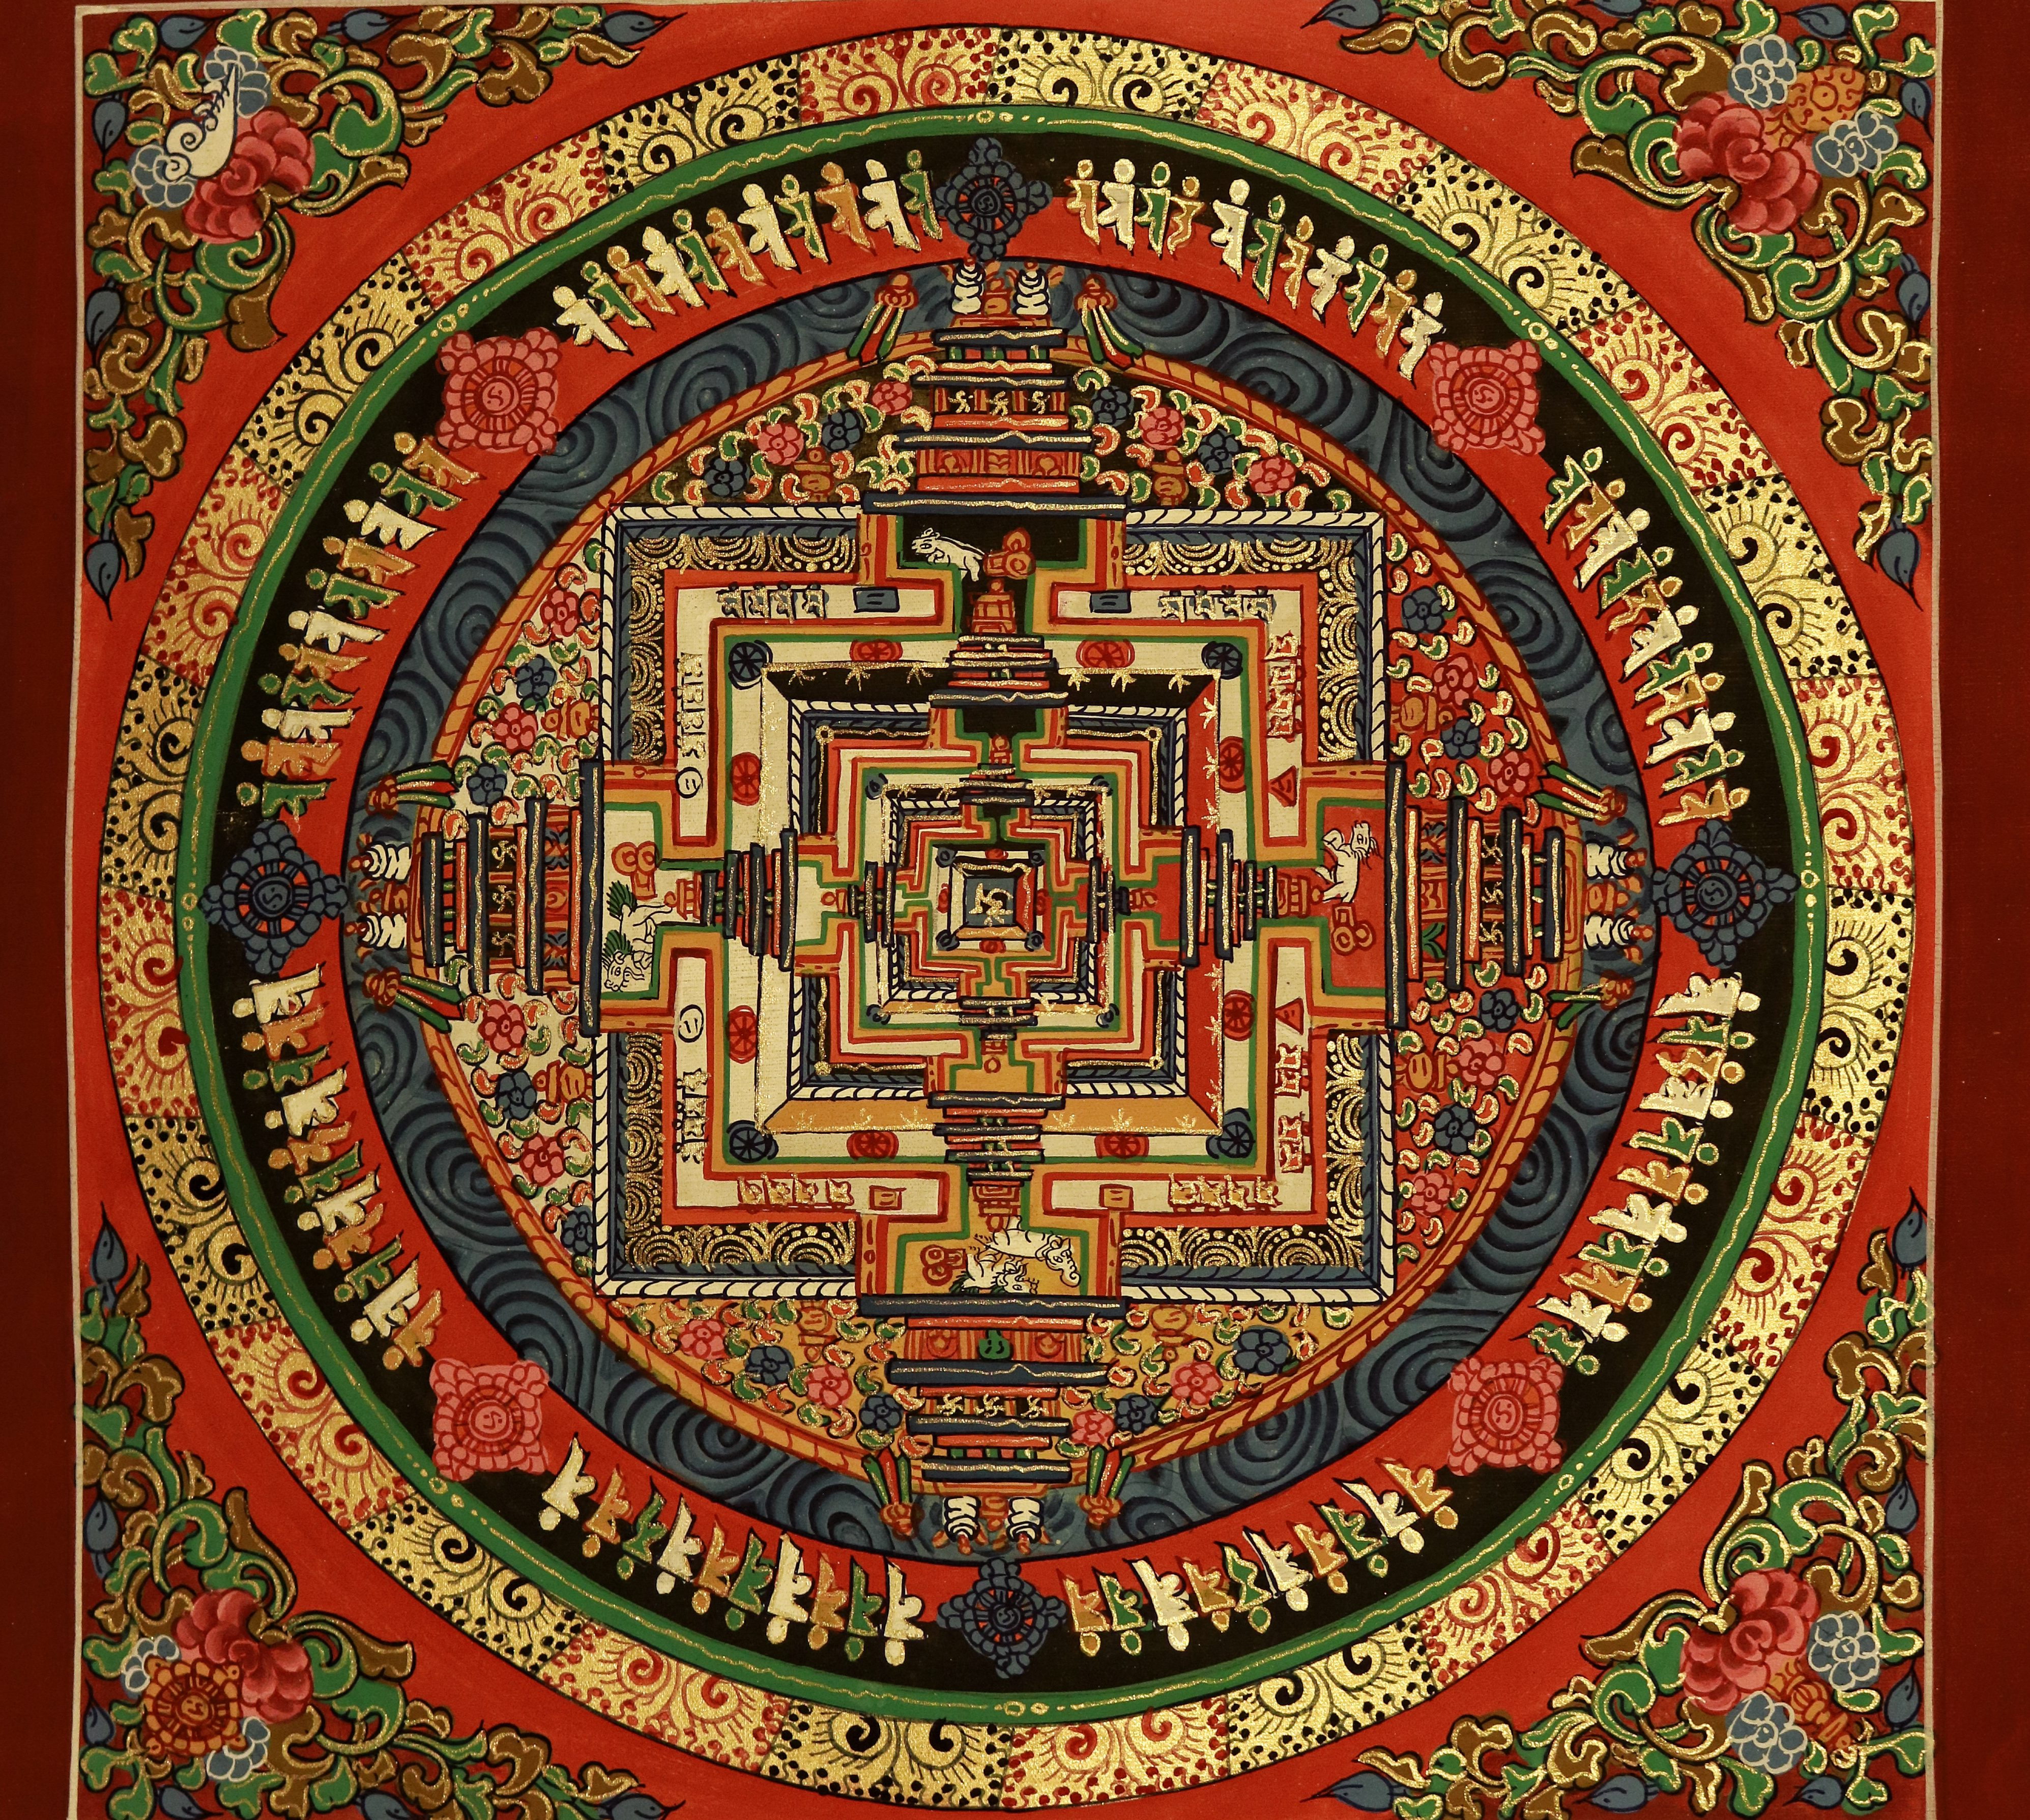 Mandalas buddhism definition of sexual misconduct